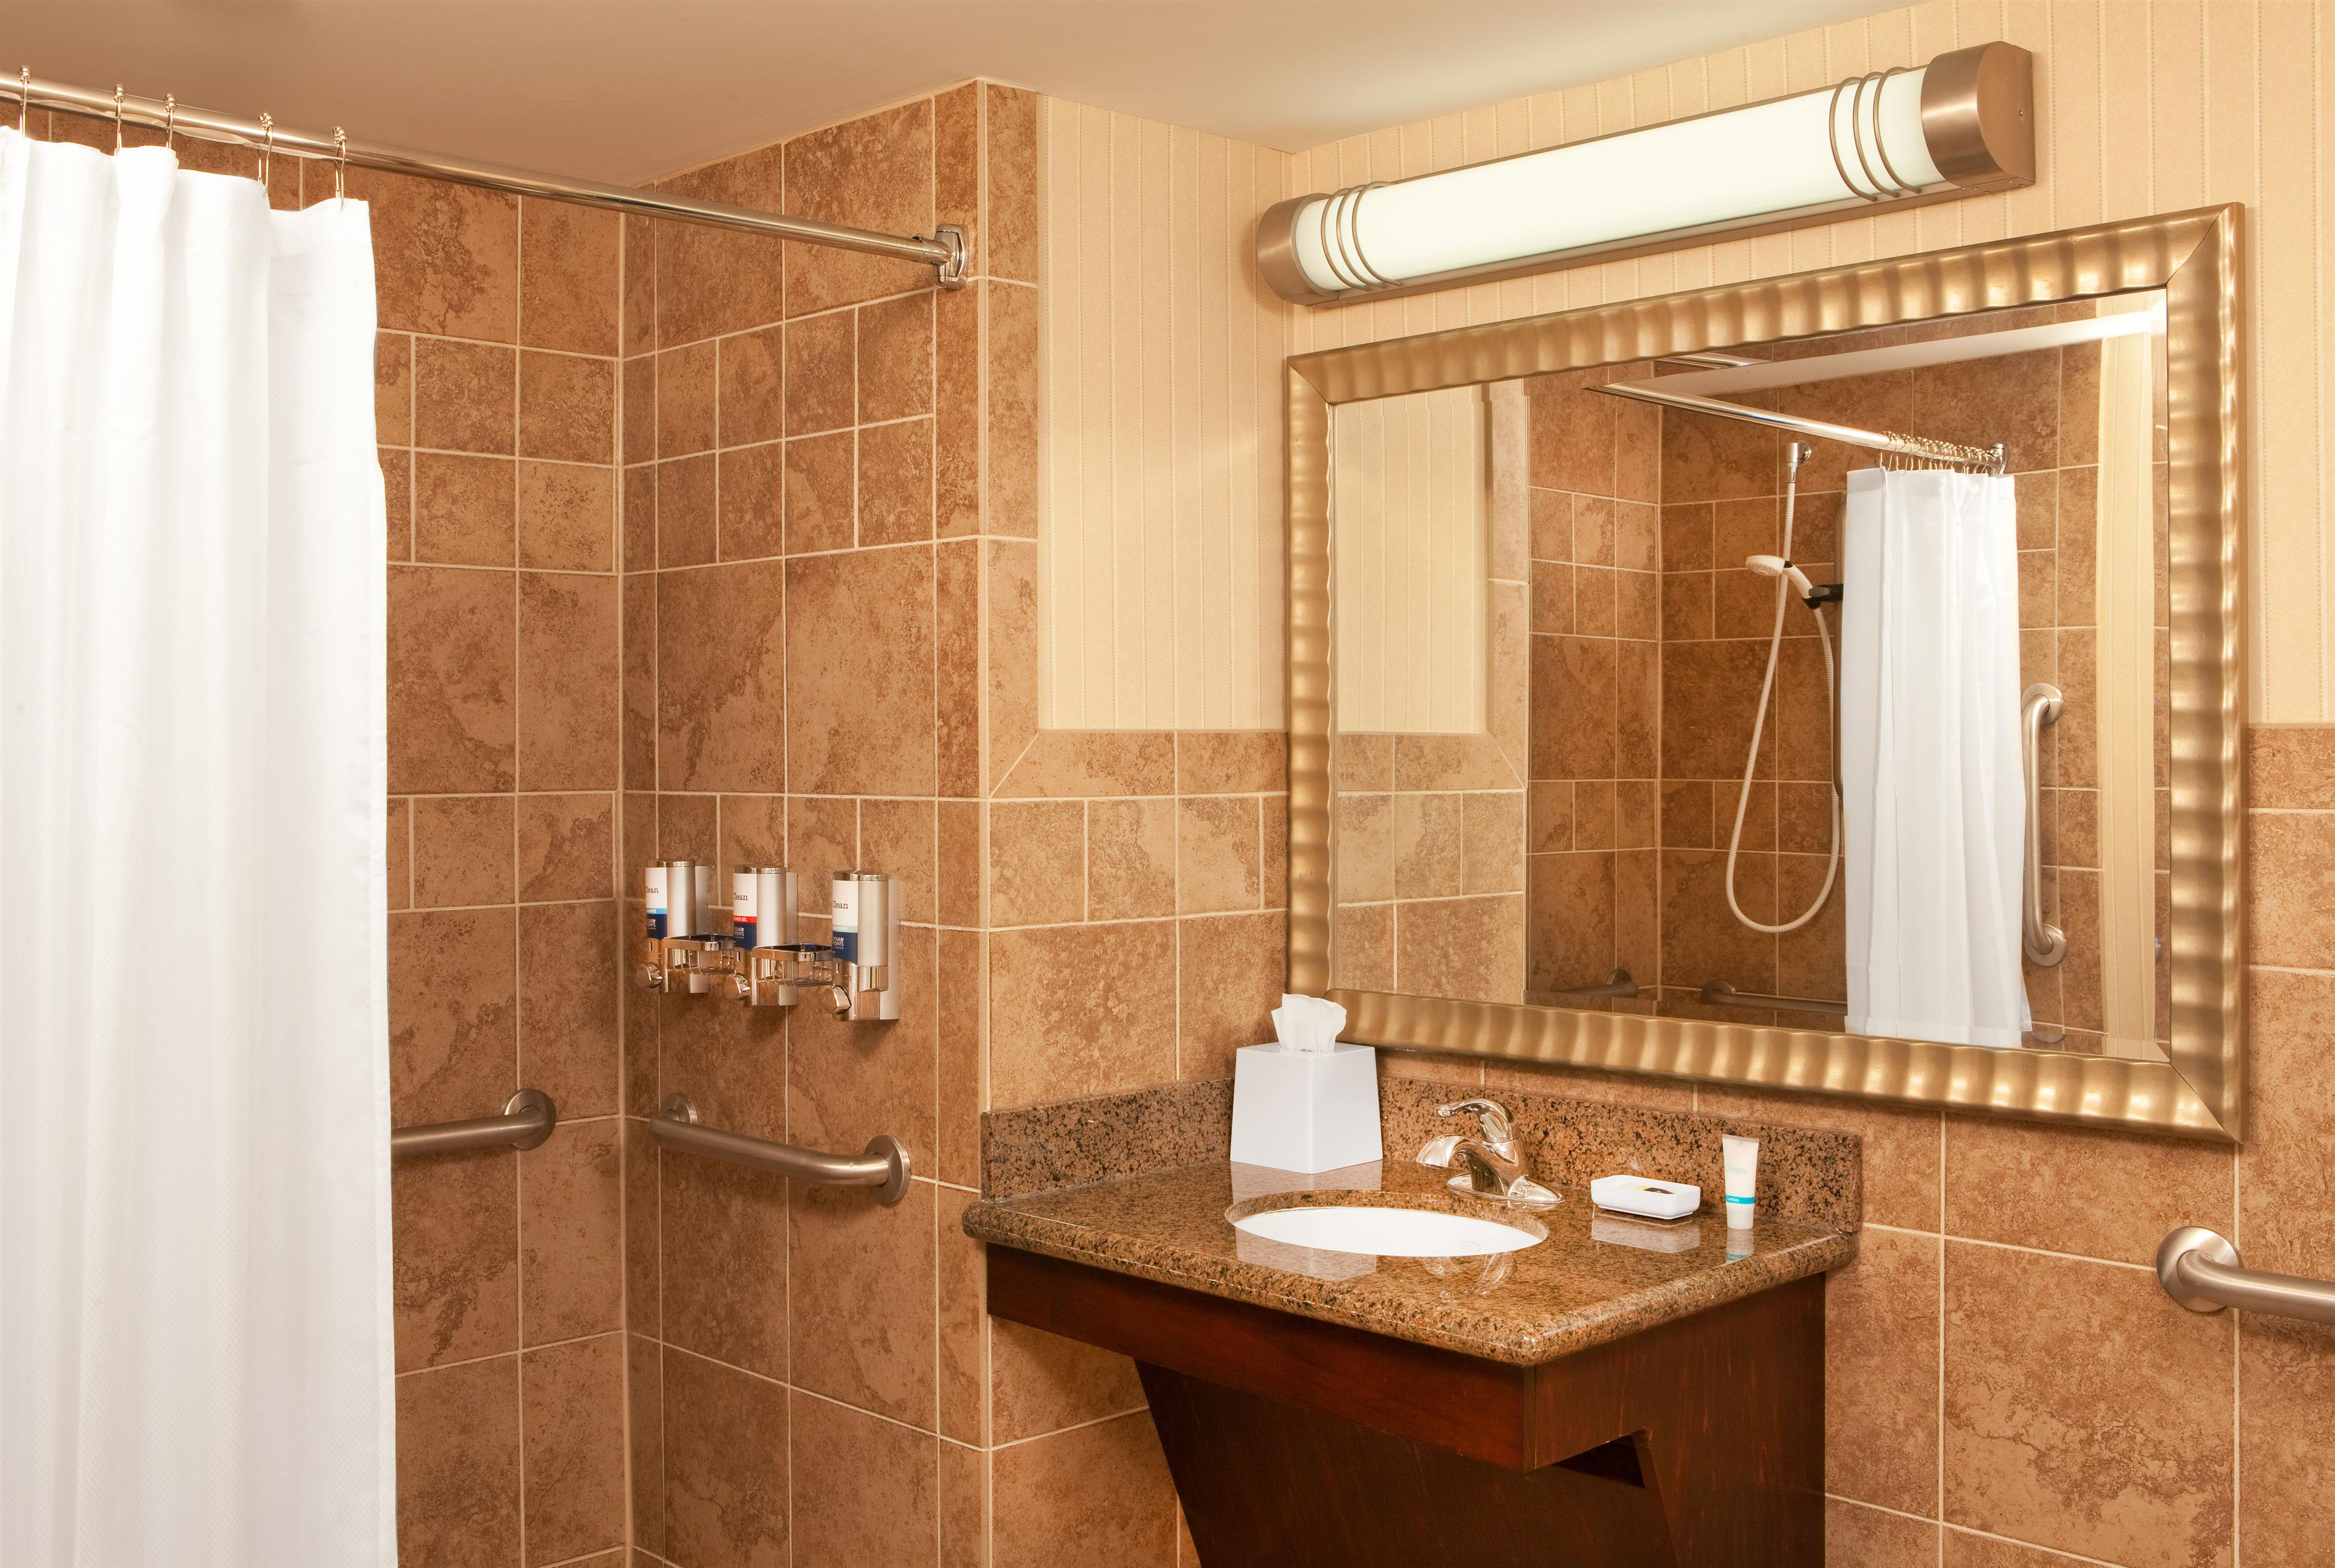 Four Points by Sheraton West Lafayette image 6